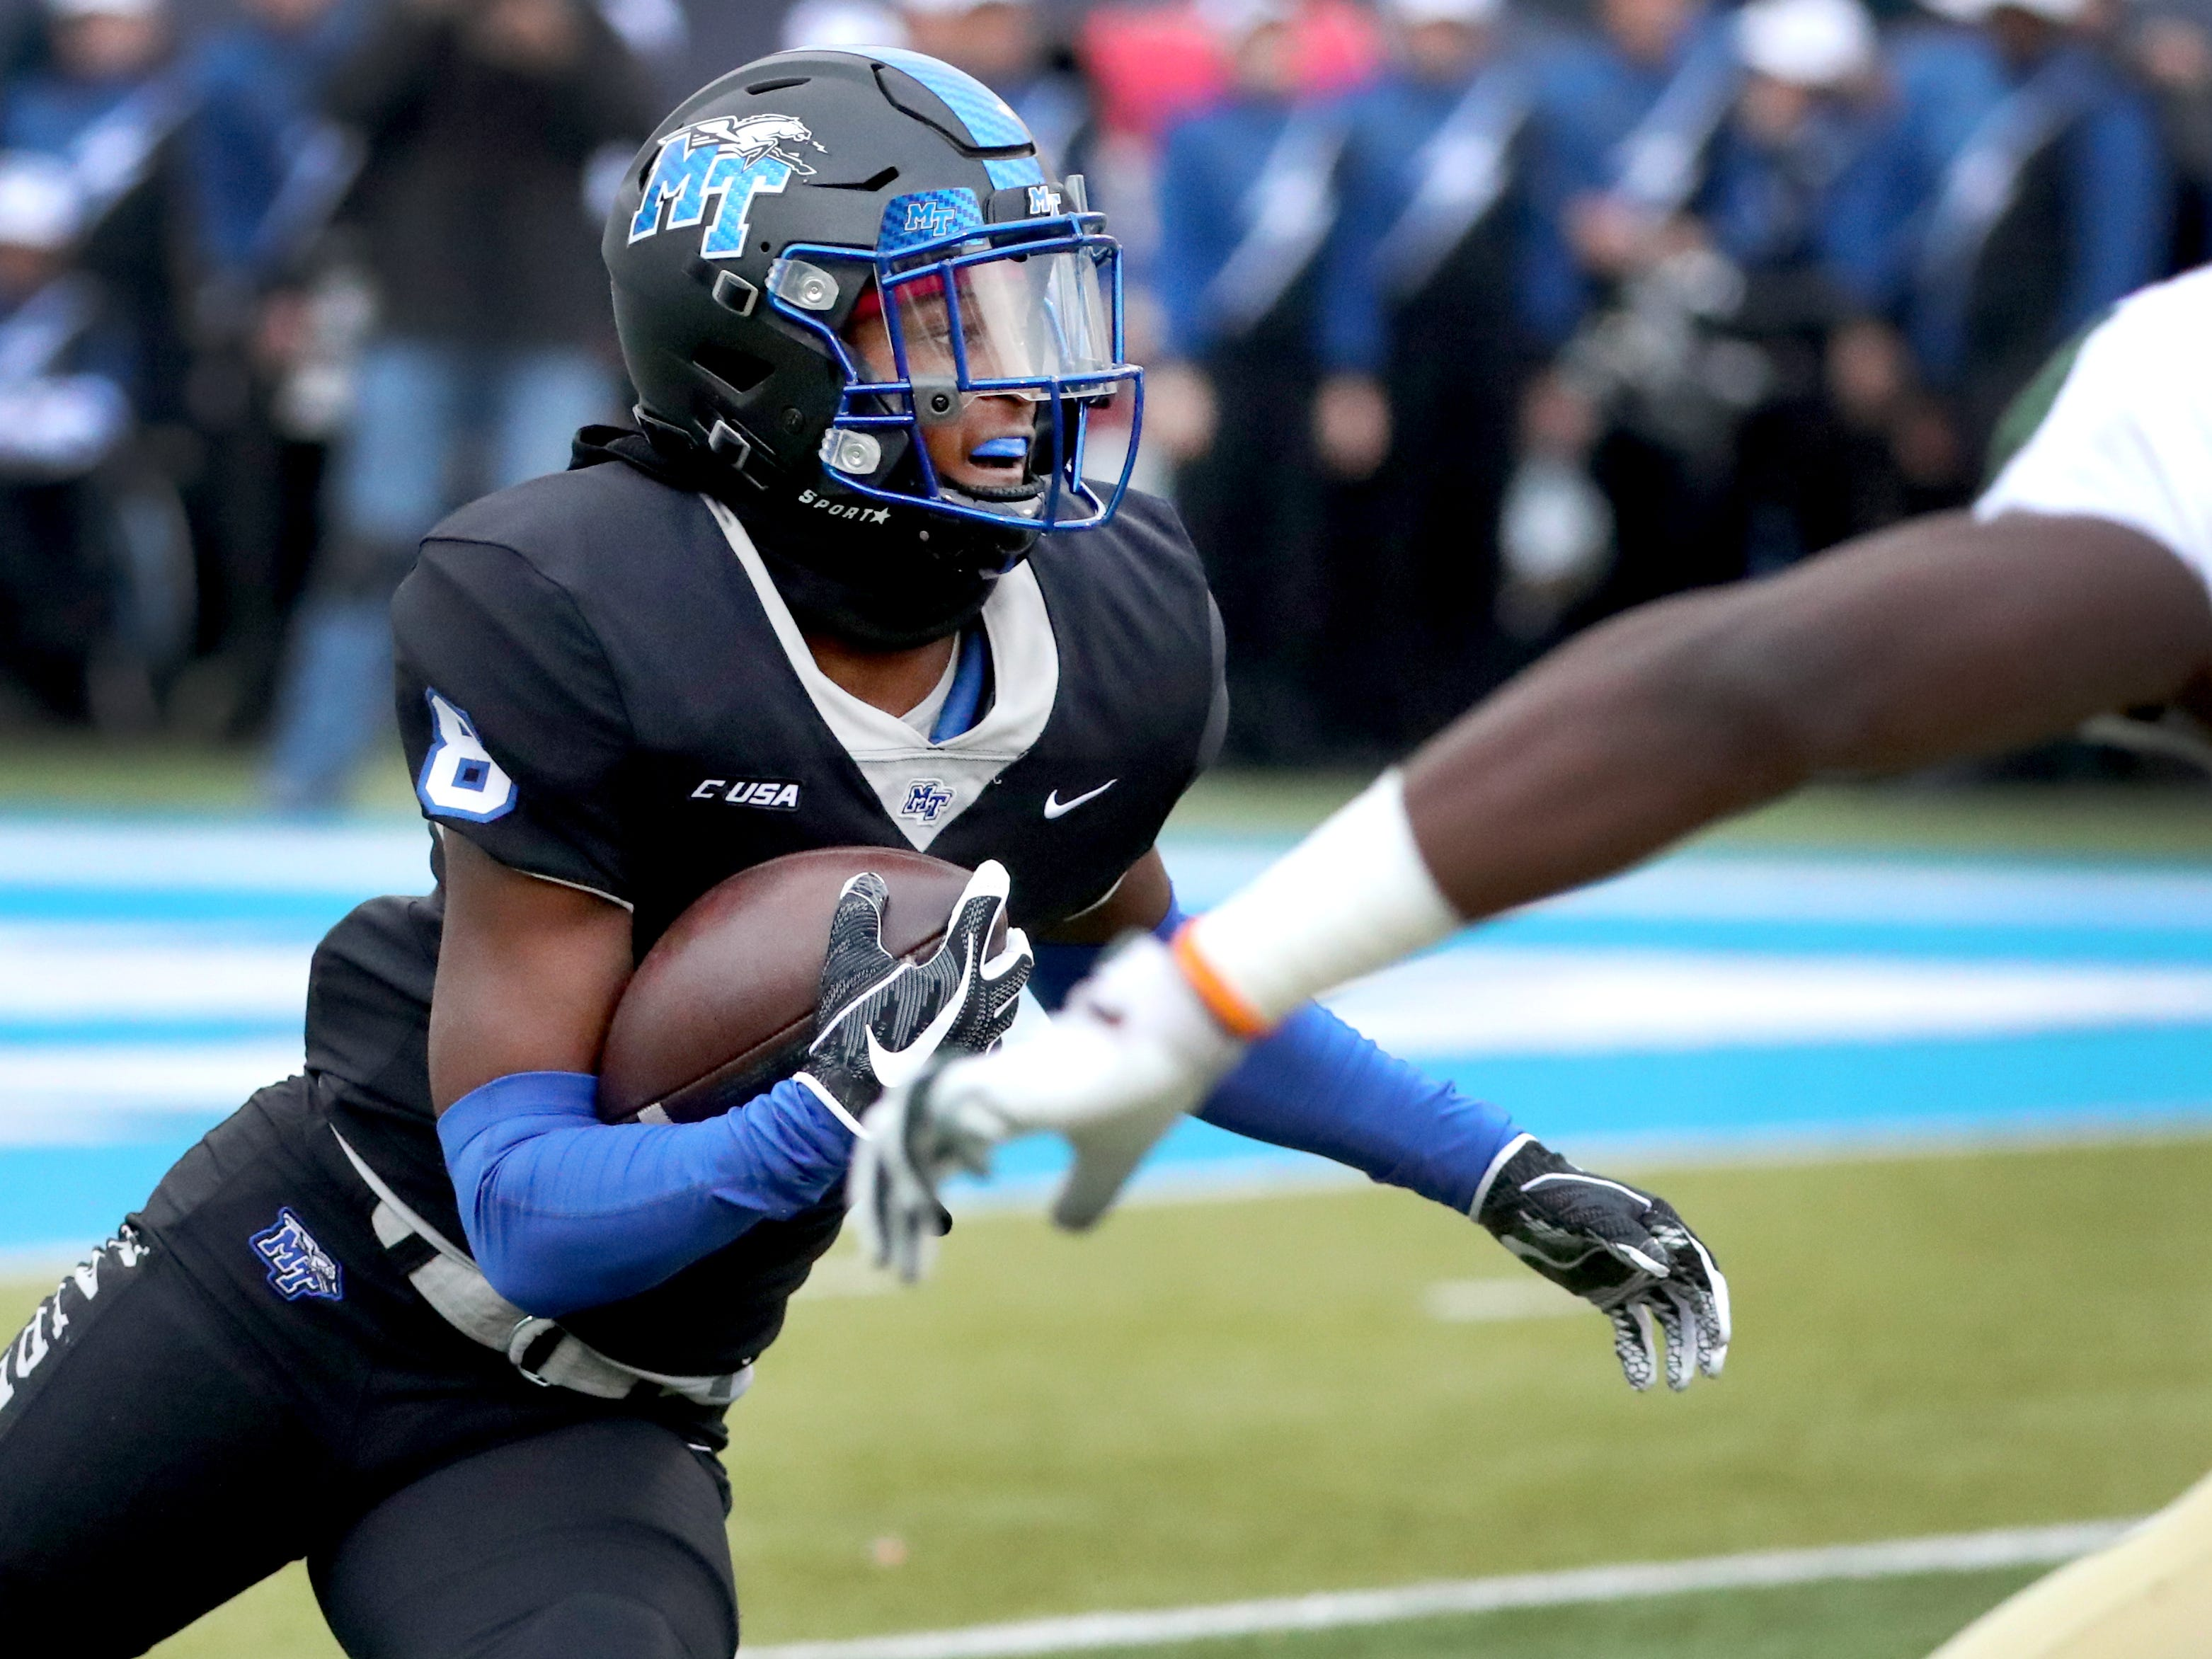 MTSU's wide receiver Ty Lee (8) runs the ball during the Conference USA Championship game against UAB at MTSU on Saturday, Dec. 1, 2018.